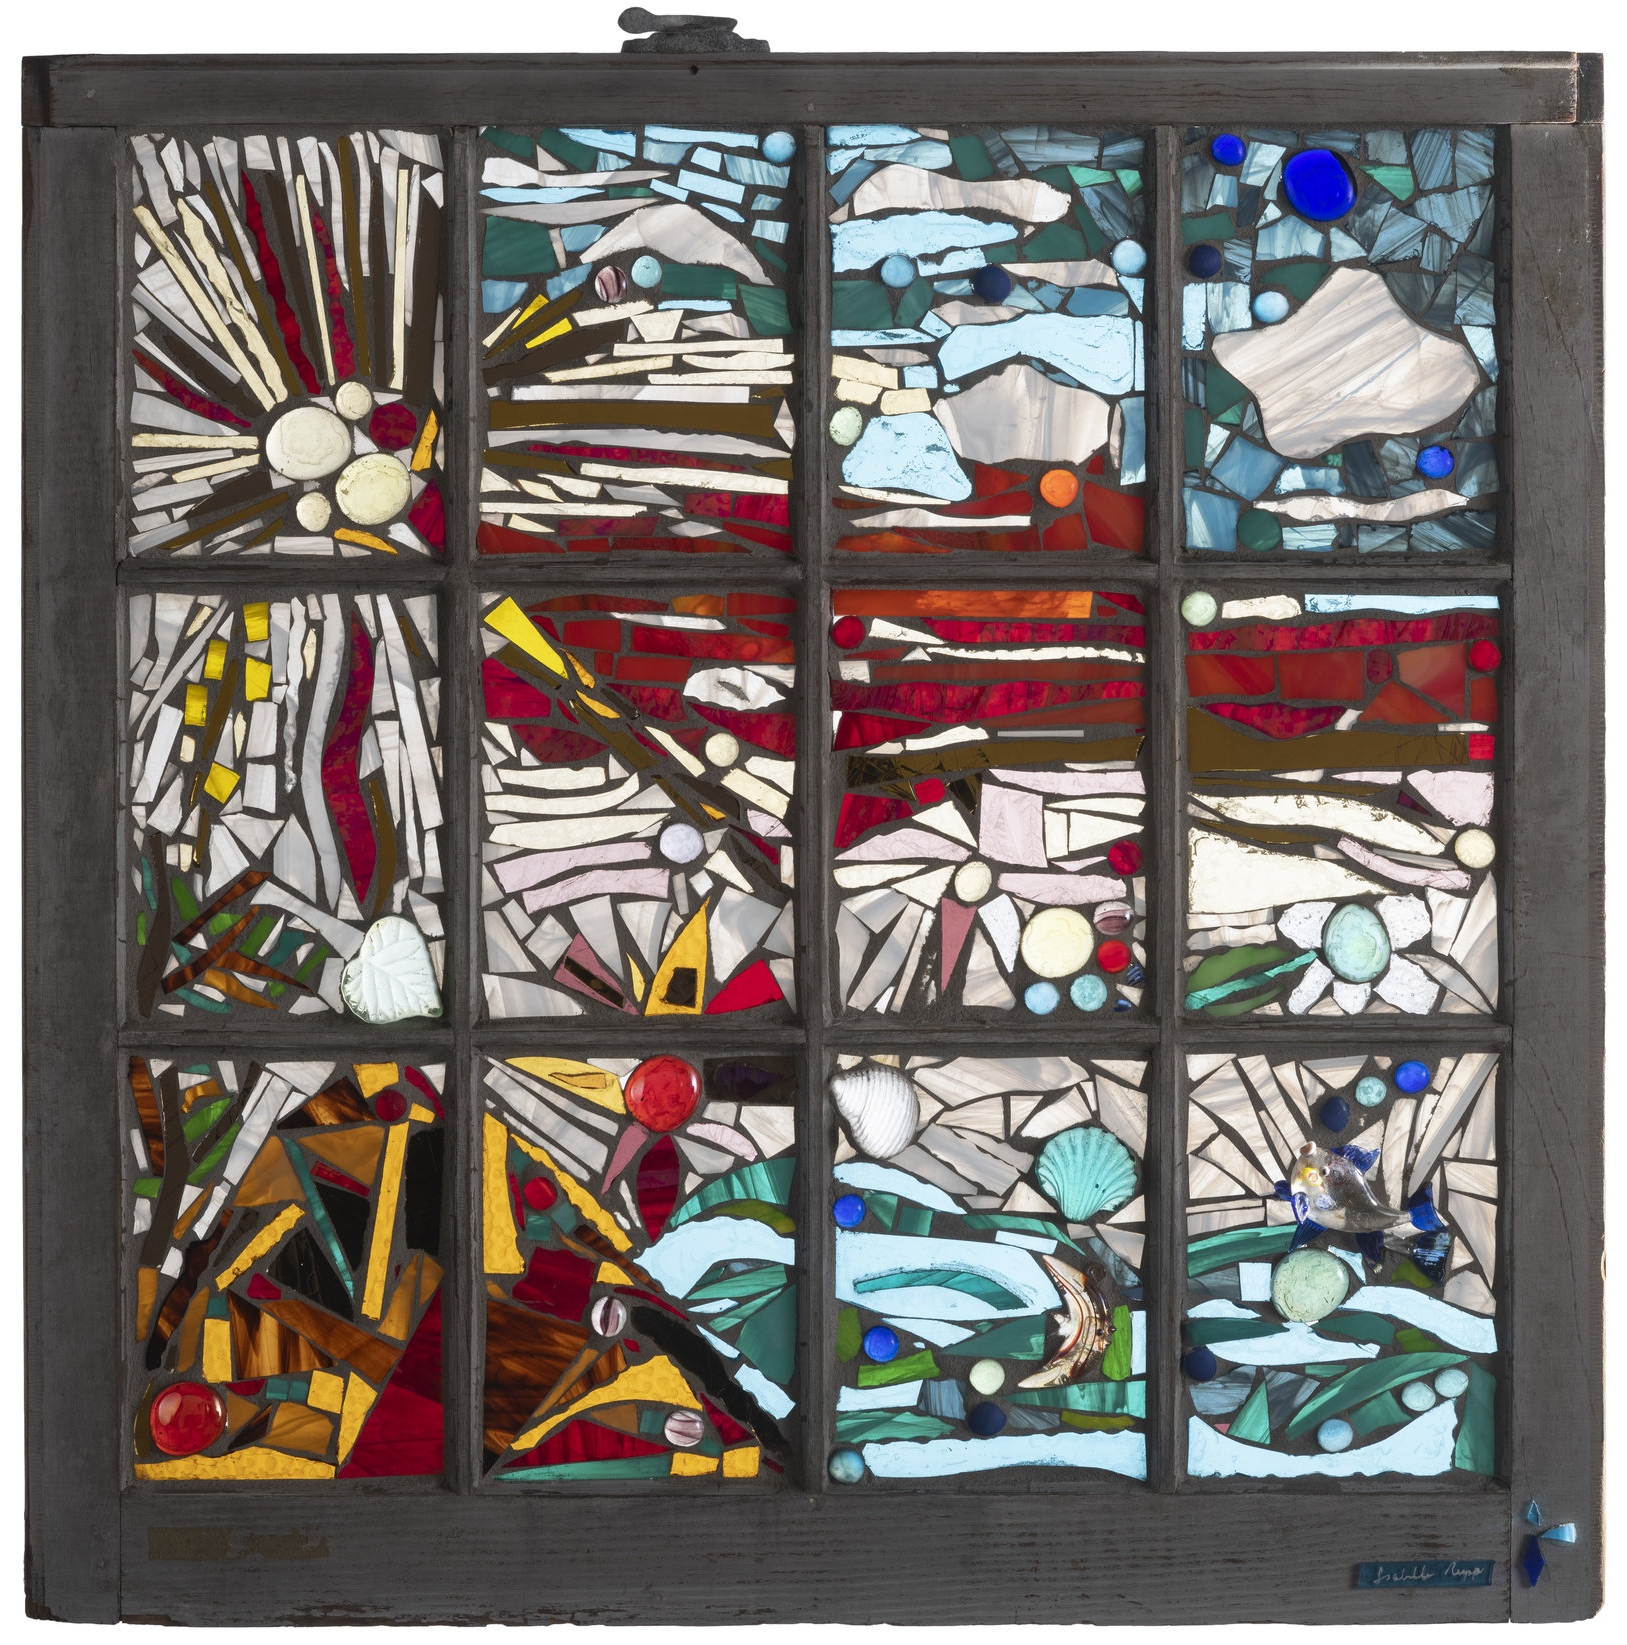 Becoming Isabella, 2000. Glass, 27 x 27 in.   Window from Cape Cod style home, Wellfleet, MA